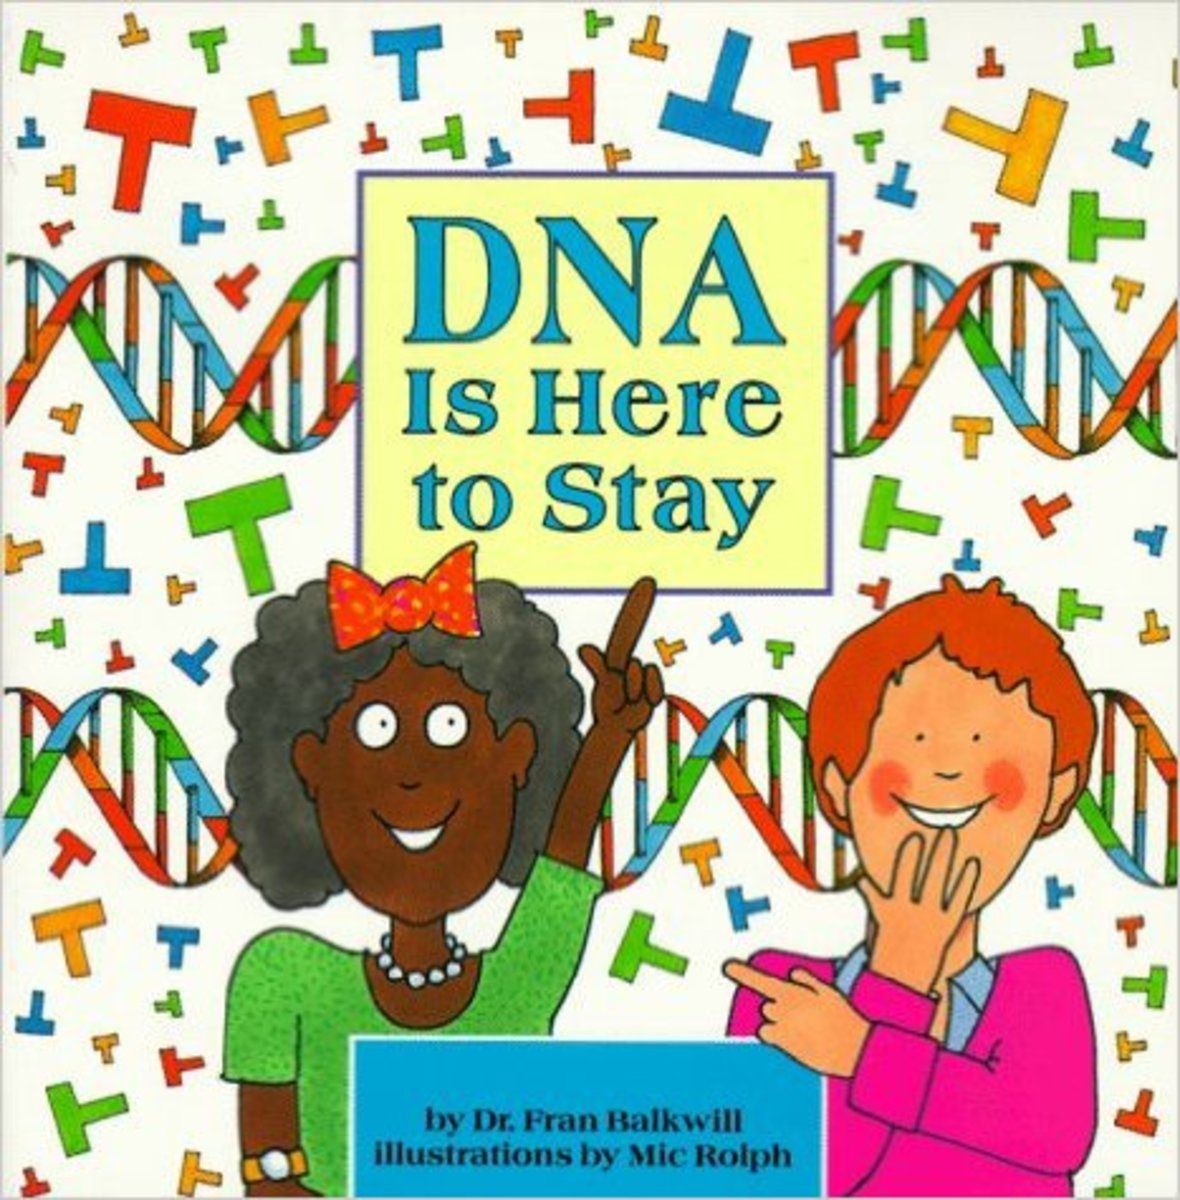 DNA is Here to Stay by Fran Balkwill